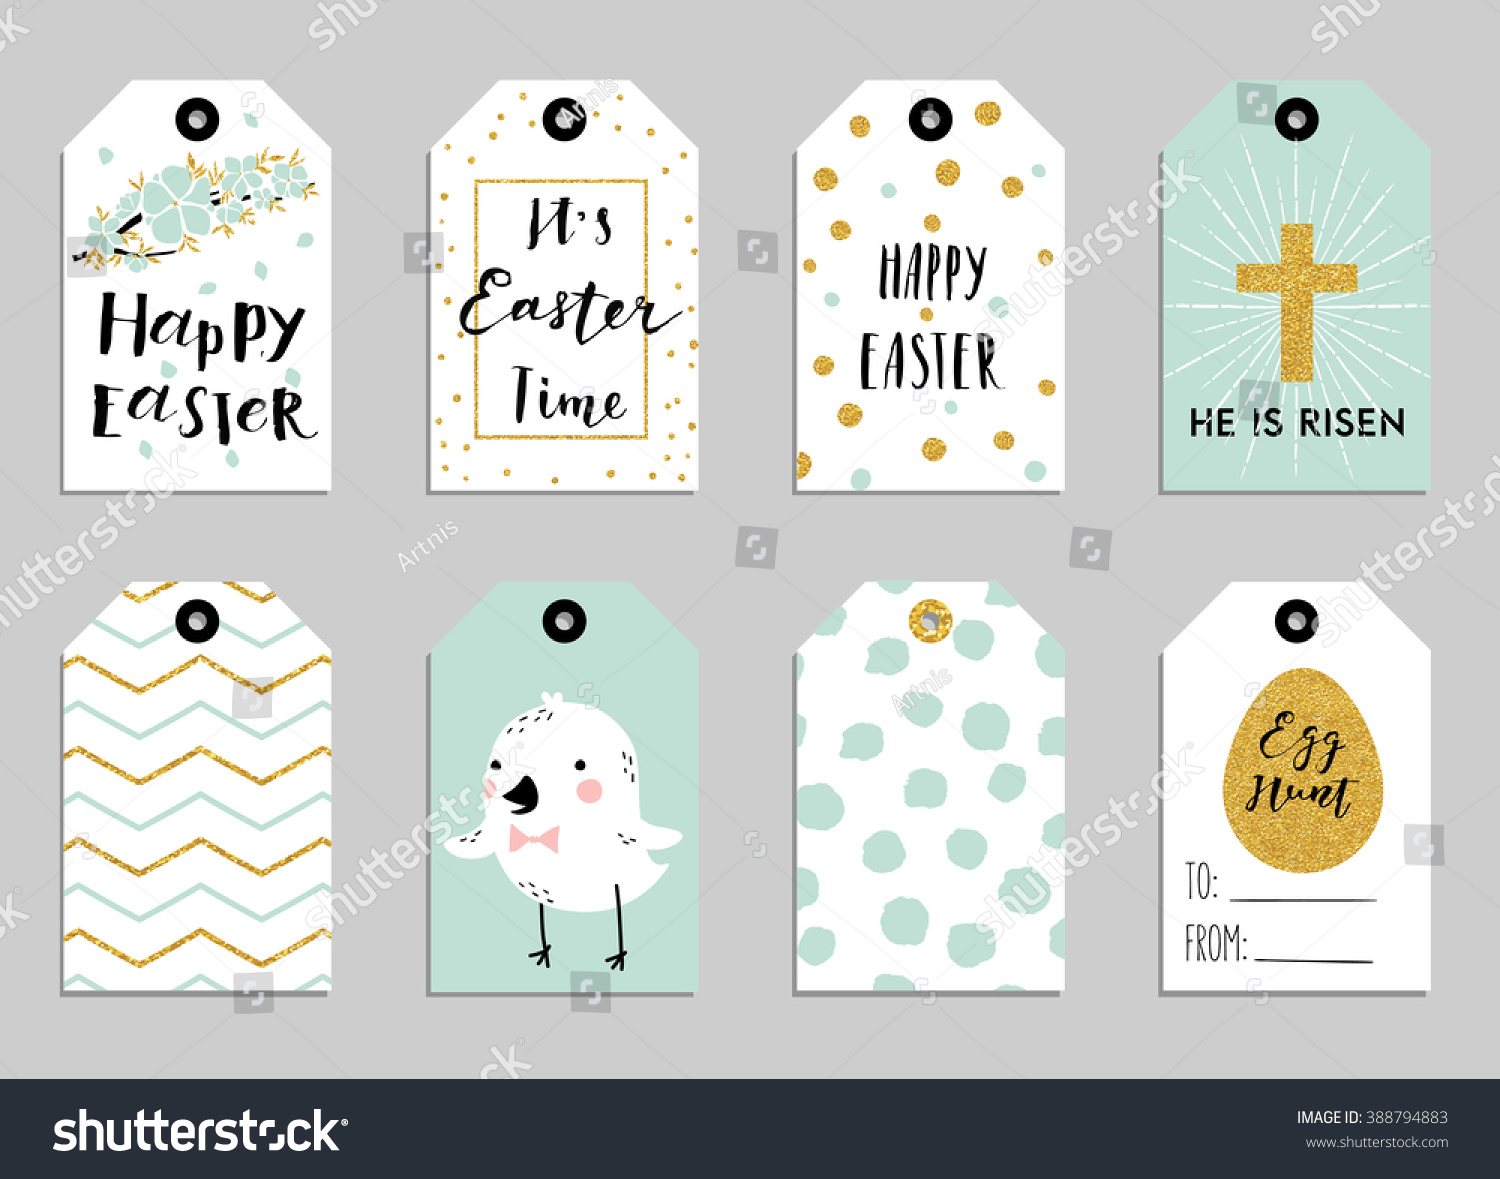 Easter gift tags cute easter bunny stock vector 388794883 easter gift tags with cute easter bunny watering can with flowers and easter greetings negle Image collections